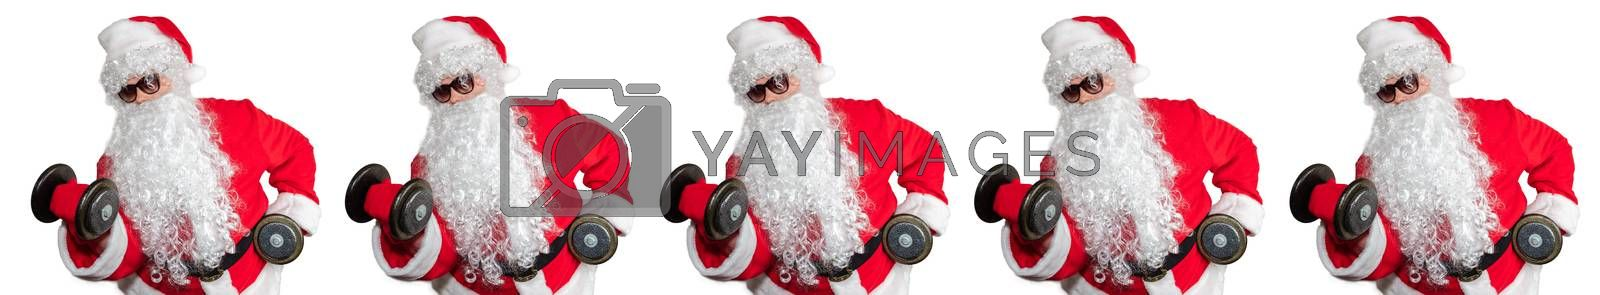 Santa Clauses working out, lifting dumbbells and doing bicep curls. Pattern style, Isolated on white background. Sport, fitness, bodybuilding conept. Banner size, copy space.